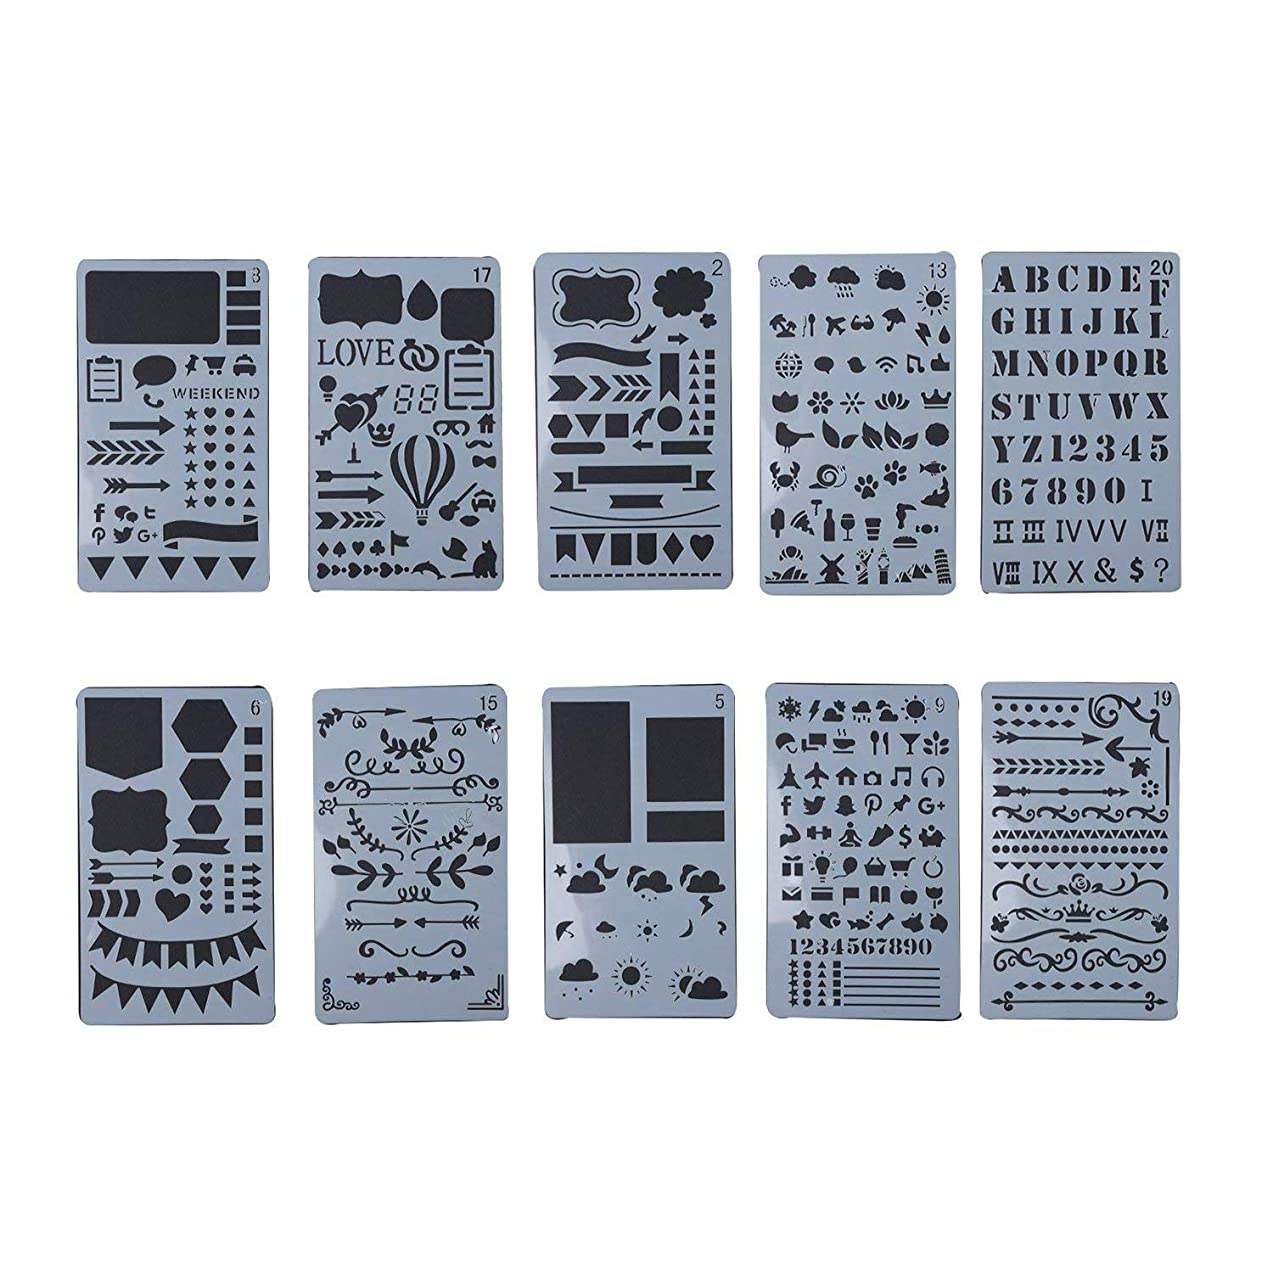 LazyMe 10 Pack Journal Notebook Stencil Plastic Planner Stencils Journal/Notebook/Diary/Scrapbook DIY Drawing Template Stencil 4x7 inch